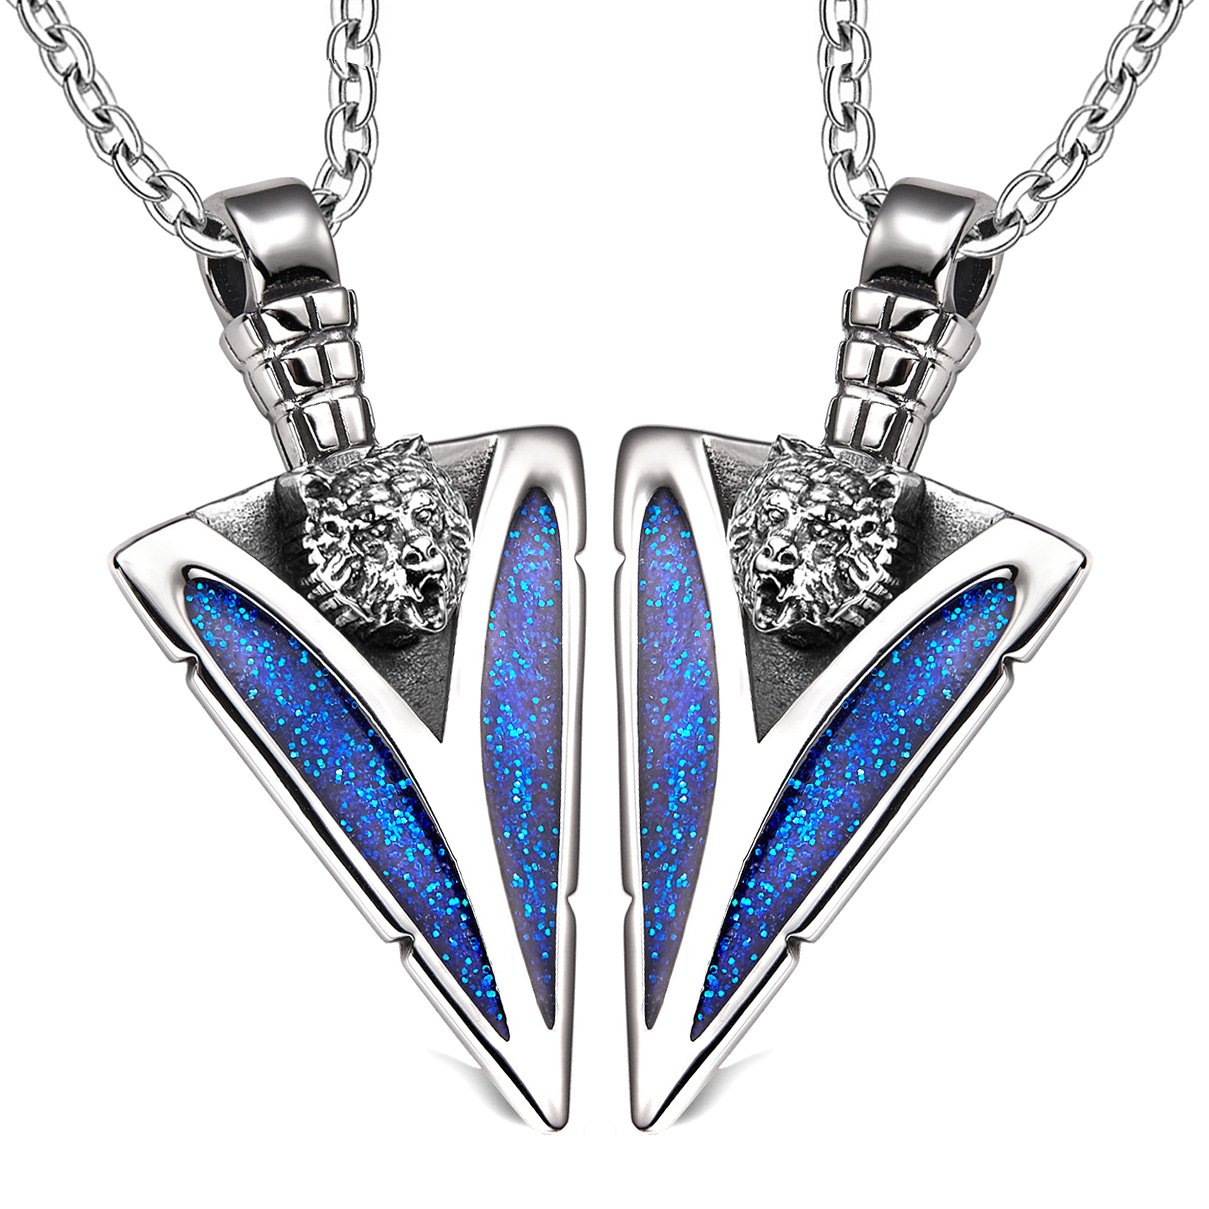 Arrowhead Wild Grizzly Bear Head Love Couples or BFF Set Protection Amulets Sparkling Blue Necklaces